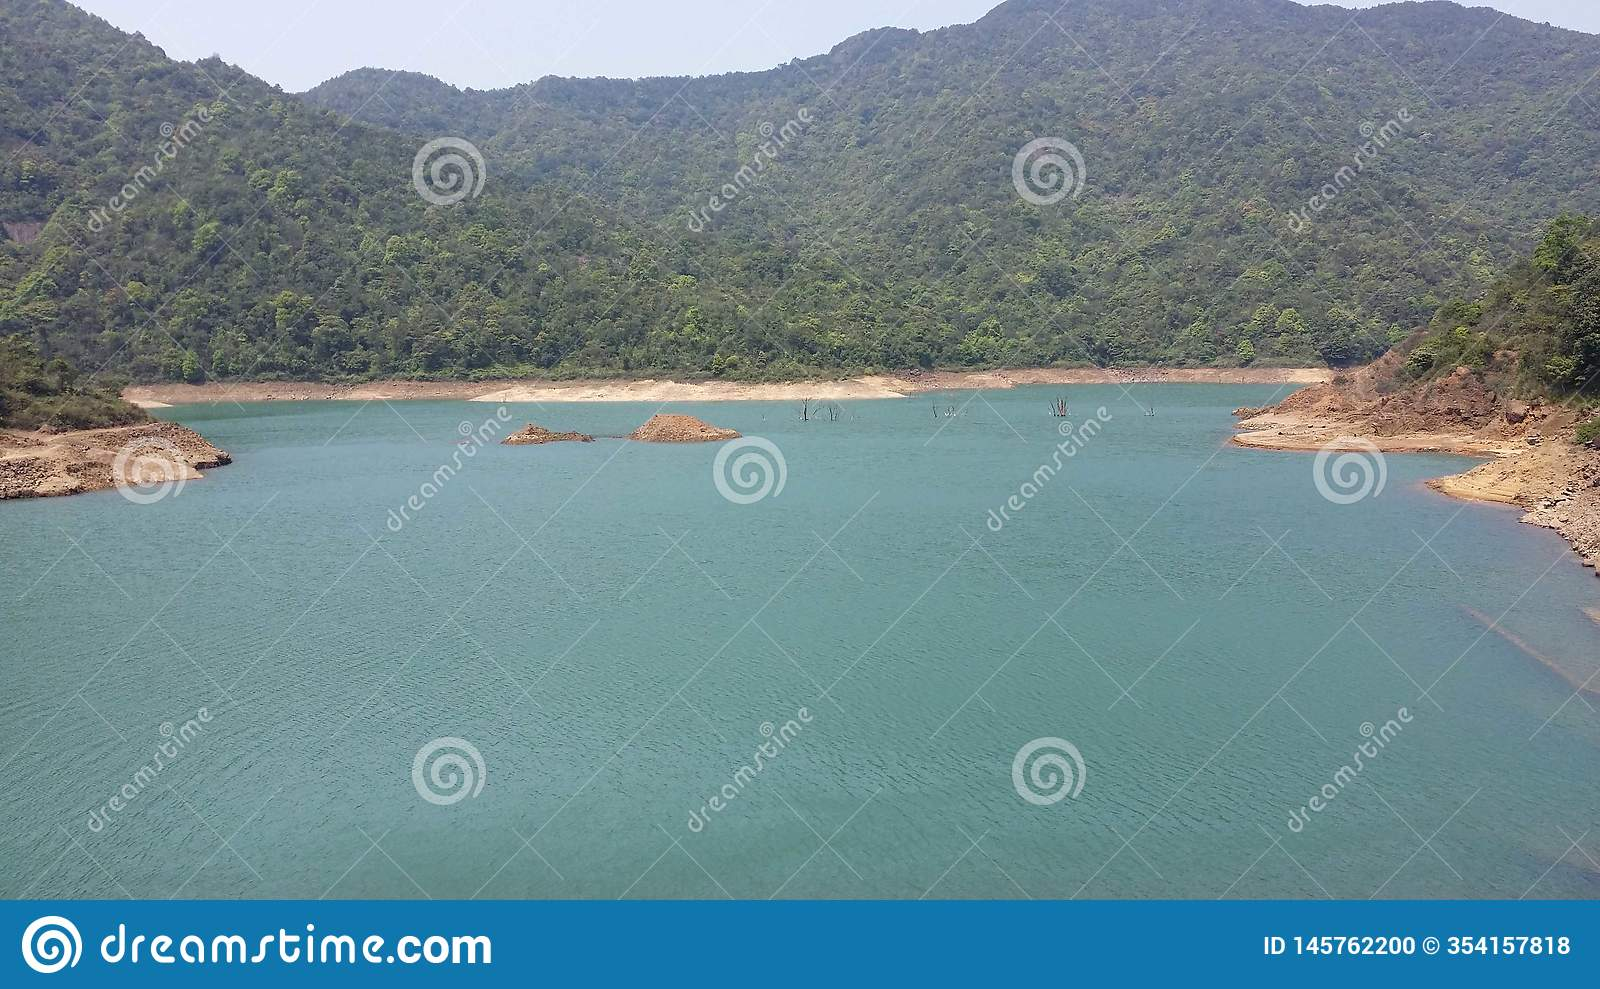 The beautiful lake is surrounded by mountains